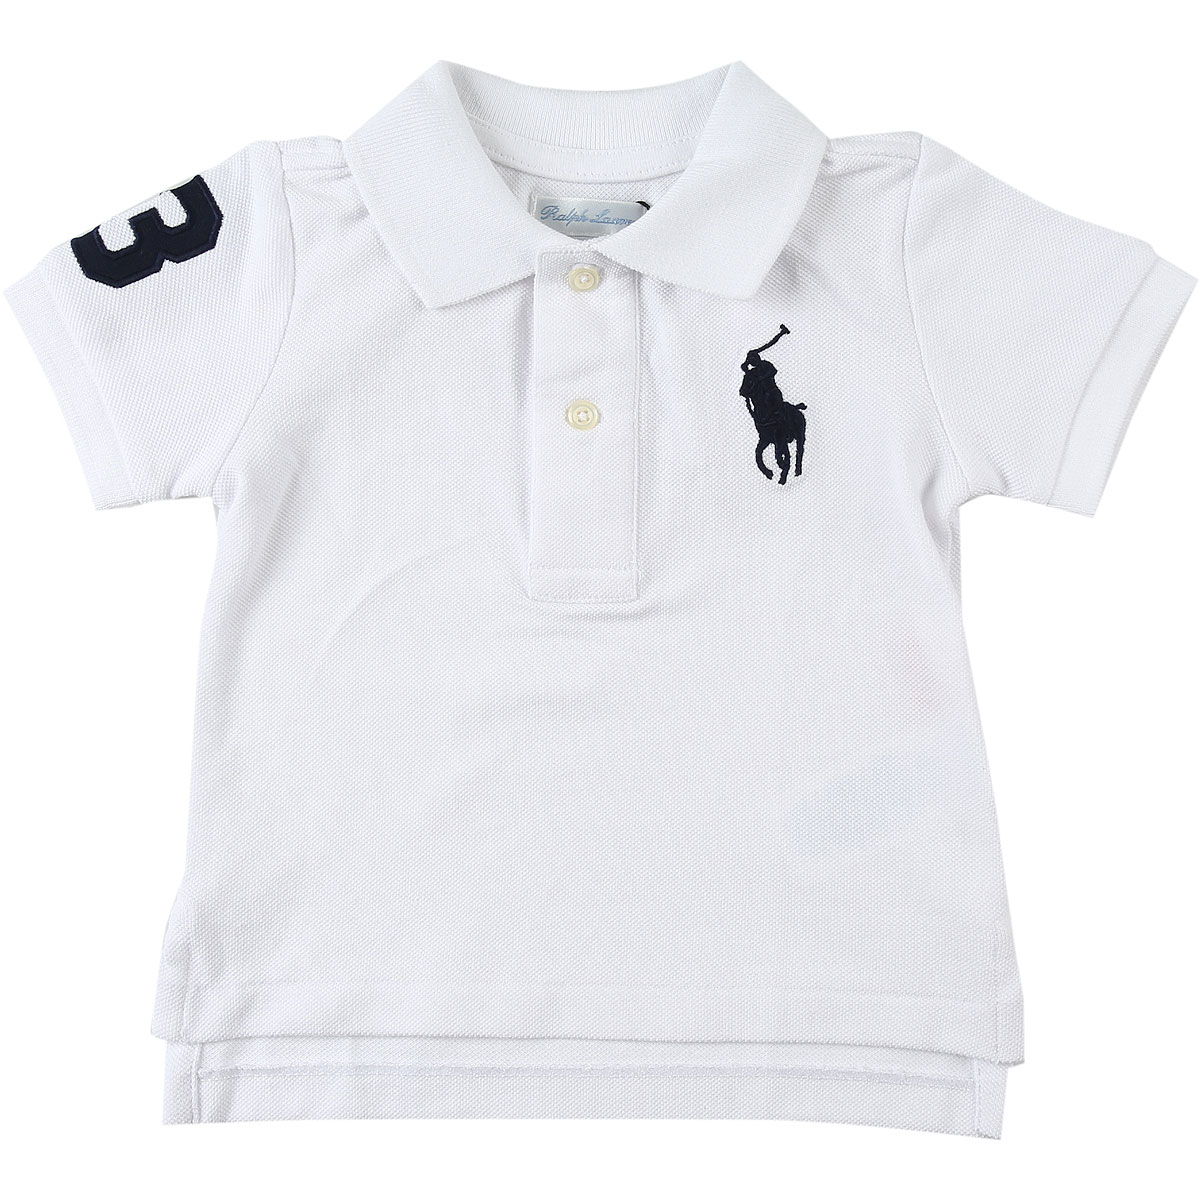 Ralph Lauren Baby Polo Shirt for Boys On Sale, White, Cotton, 2019, 2Y 6M 9M